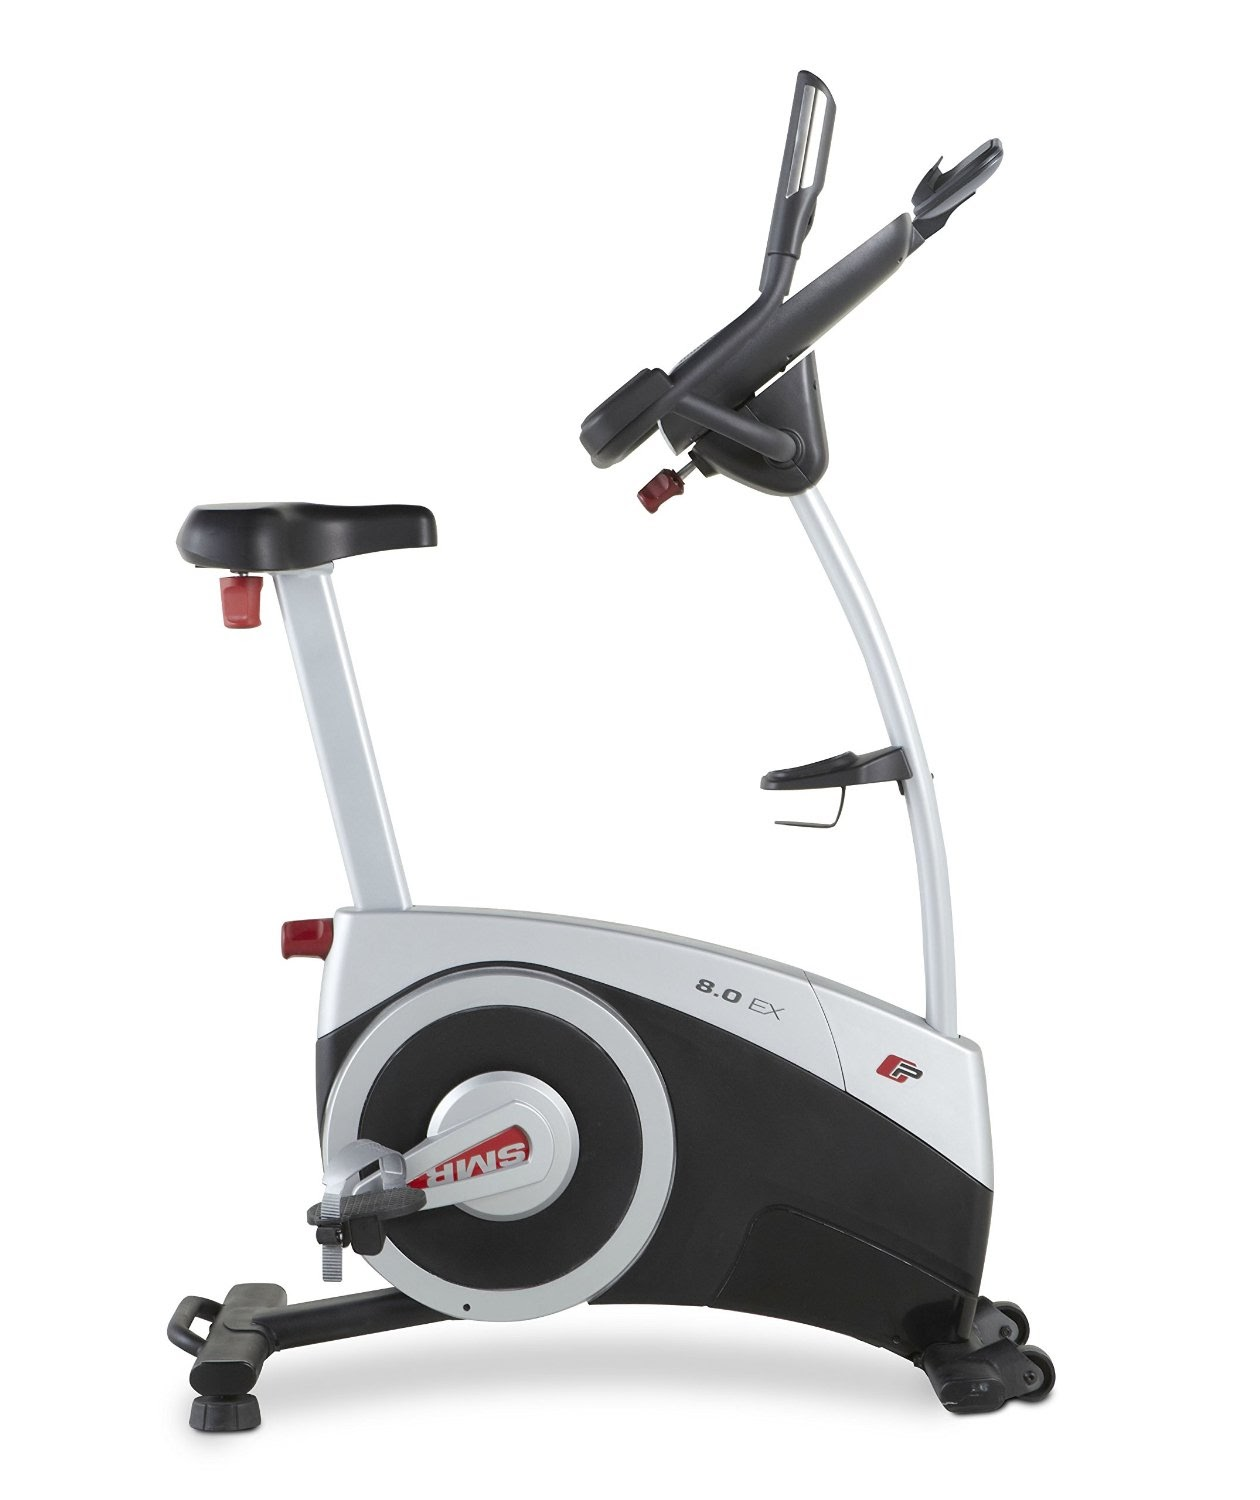 Exercise Bike Zone: ProForm 8.0 EX Exercise Bike, Review